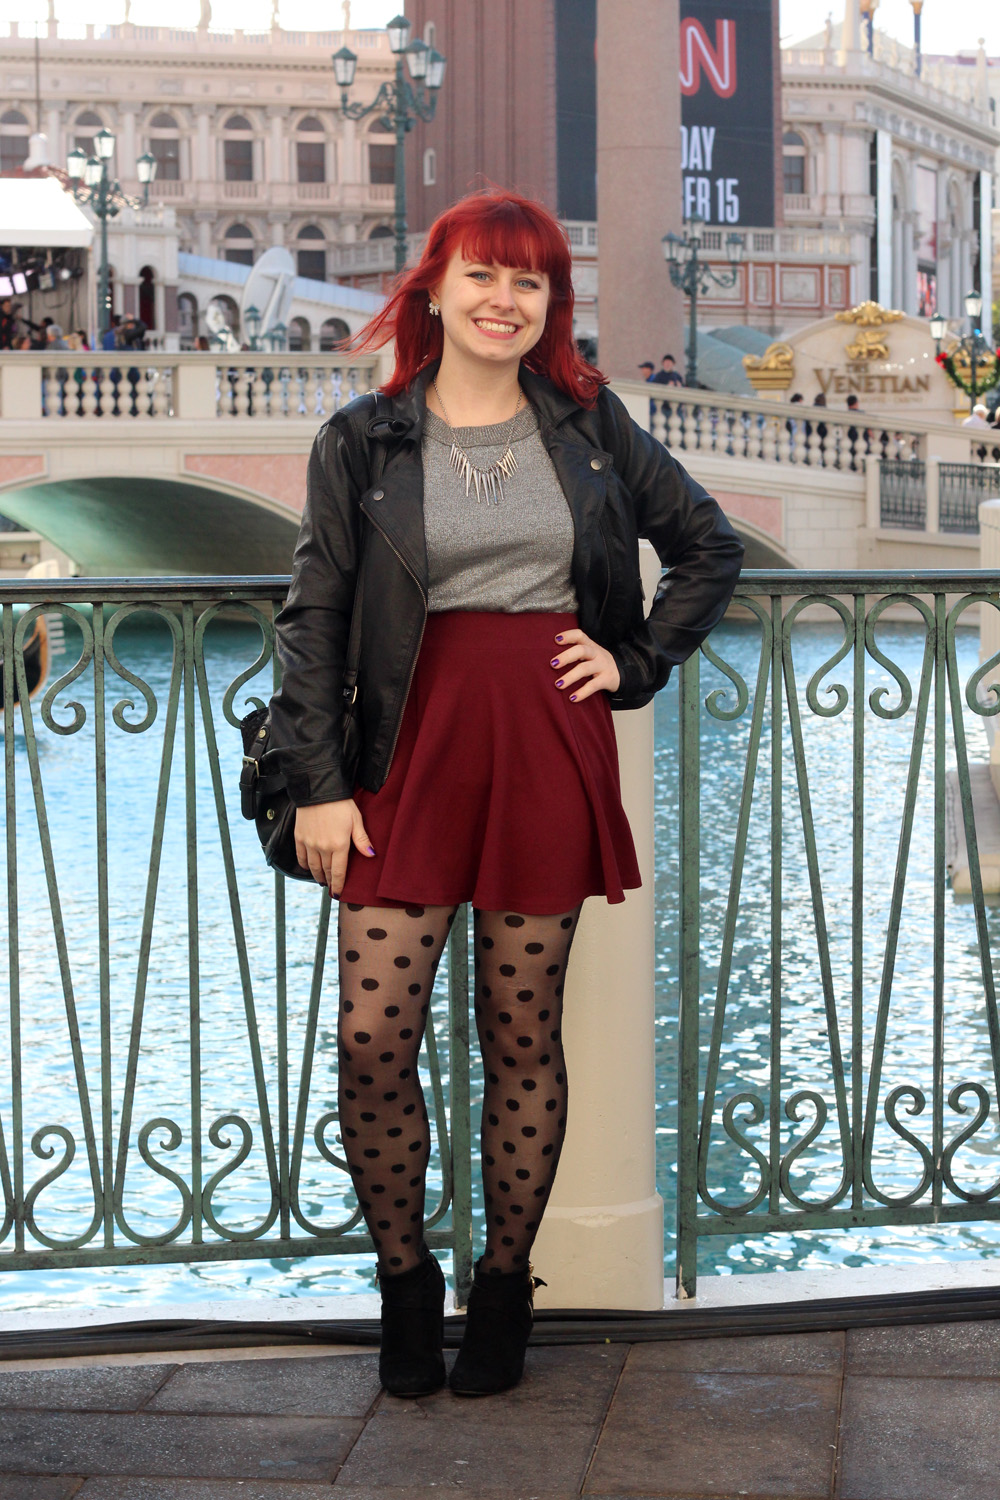 Silver Sweater, Leather Jacket, Maroon Skater Skirt, and Polka Dot Tights in Vegas